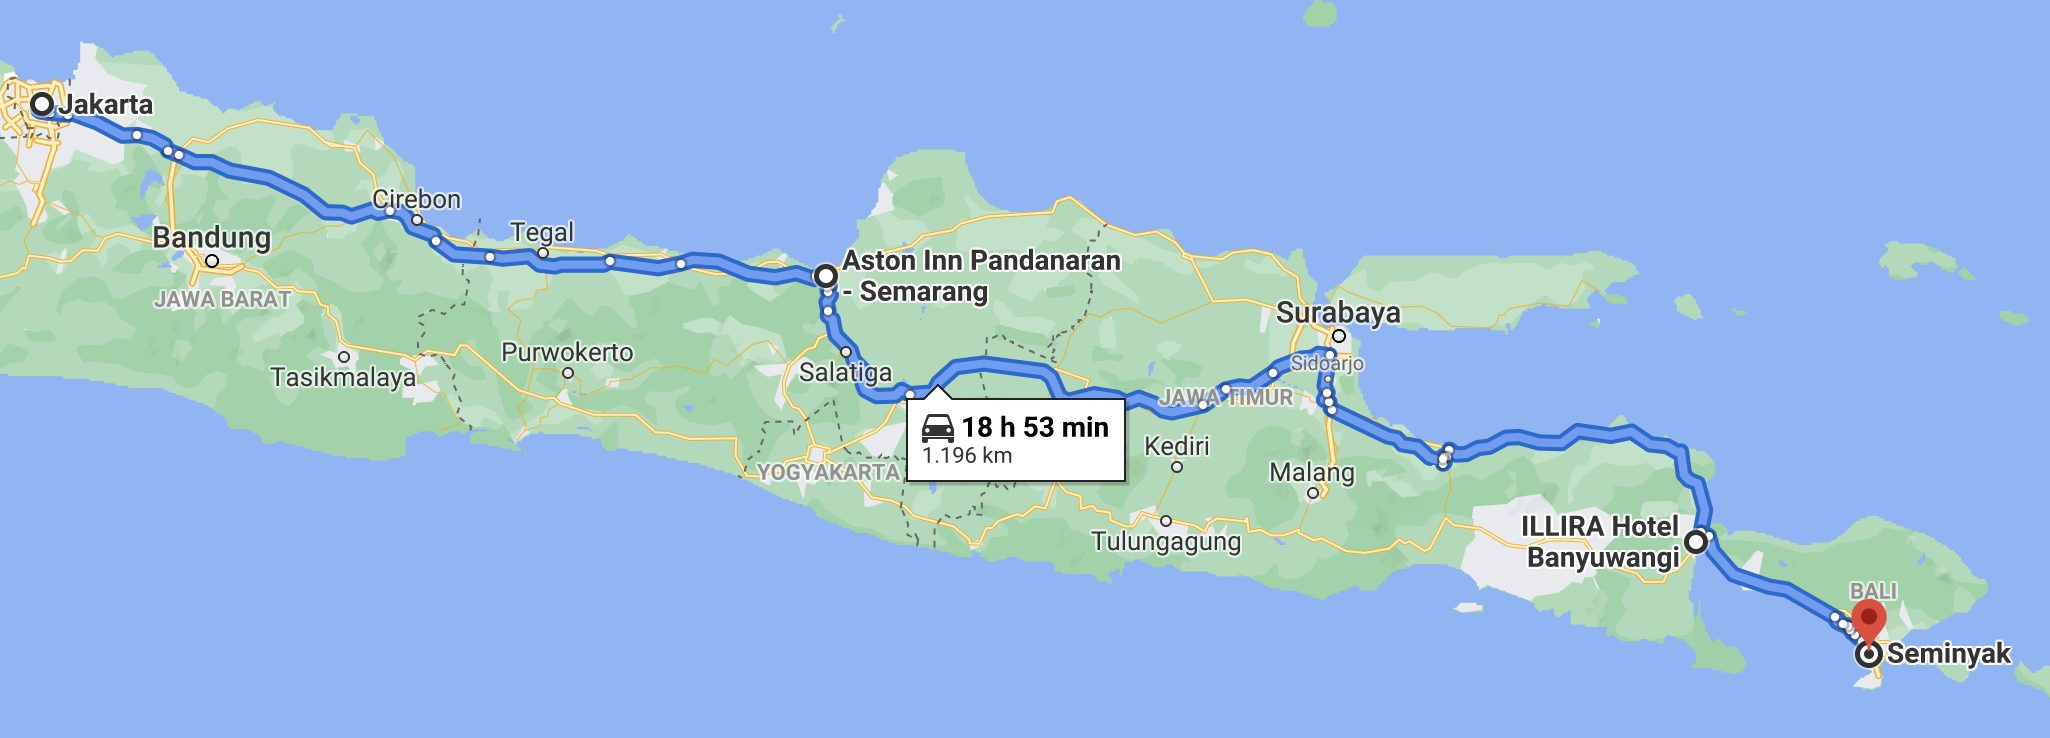 Travel Route From Jakarta To Bali